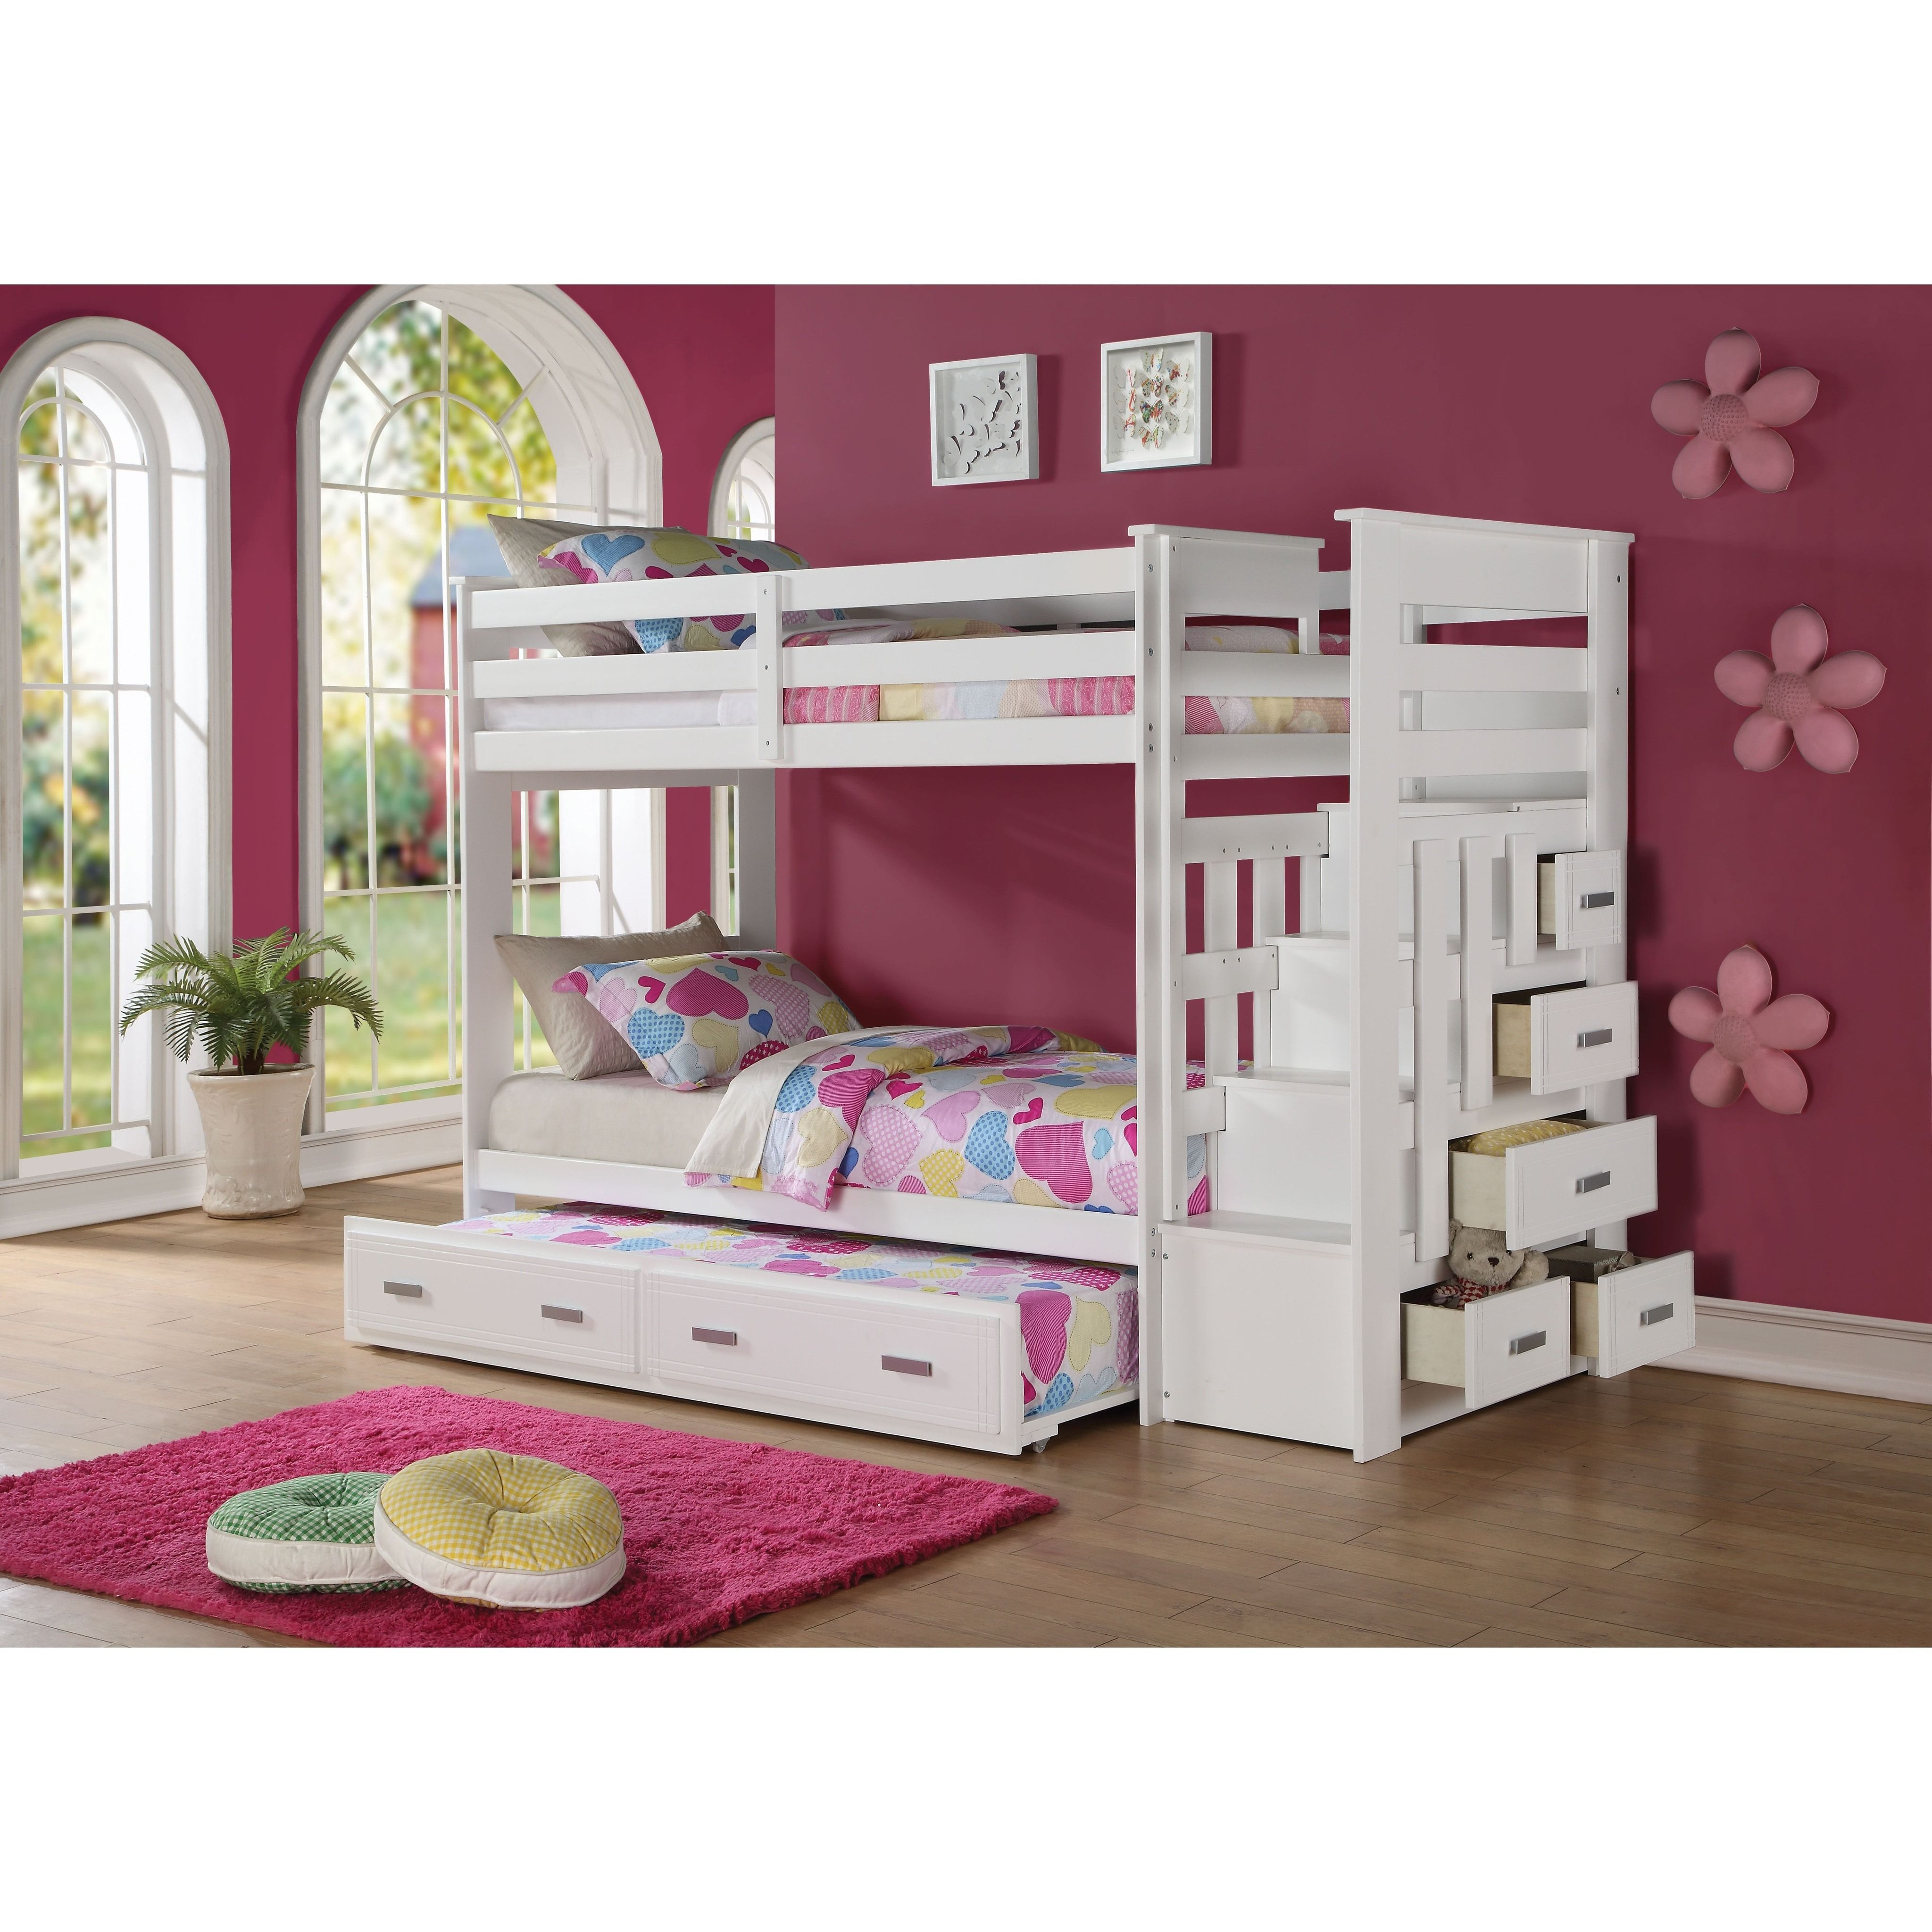 Allentown White Twin Over Twin Bunk Bed Camas Pinterest  # Tuwi Muebles Infantiles